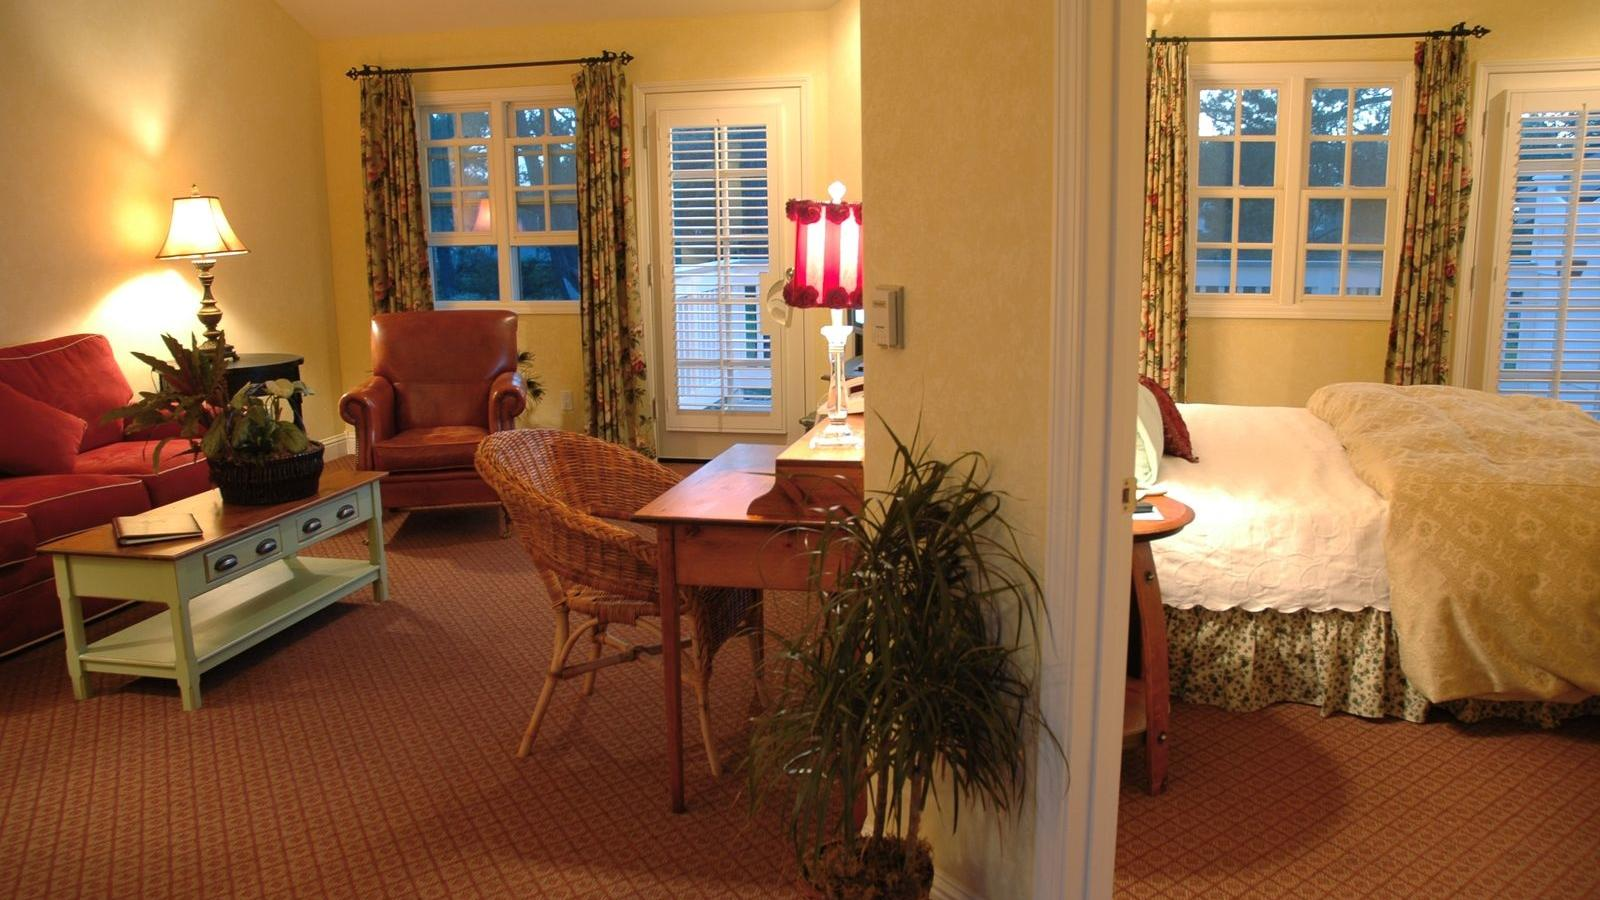 Deluxe Suite at Cambria Pines Lodge